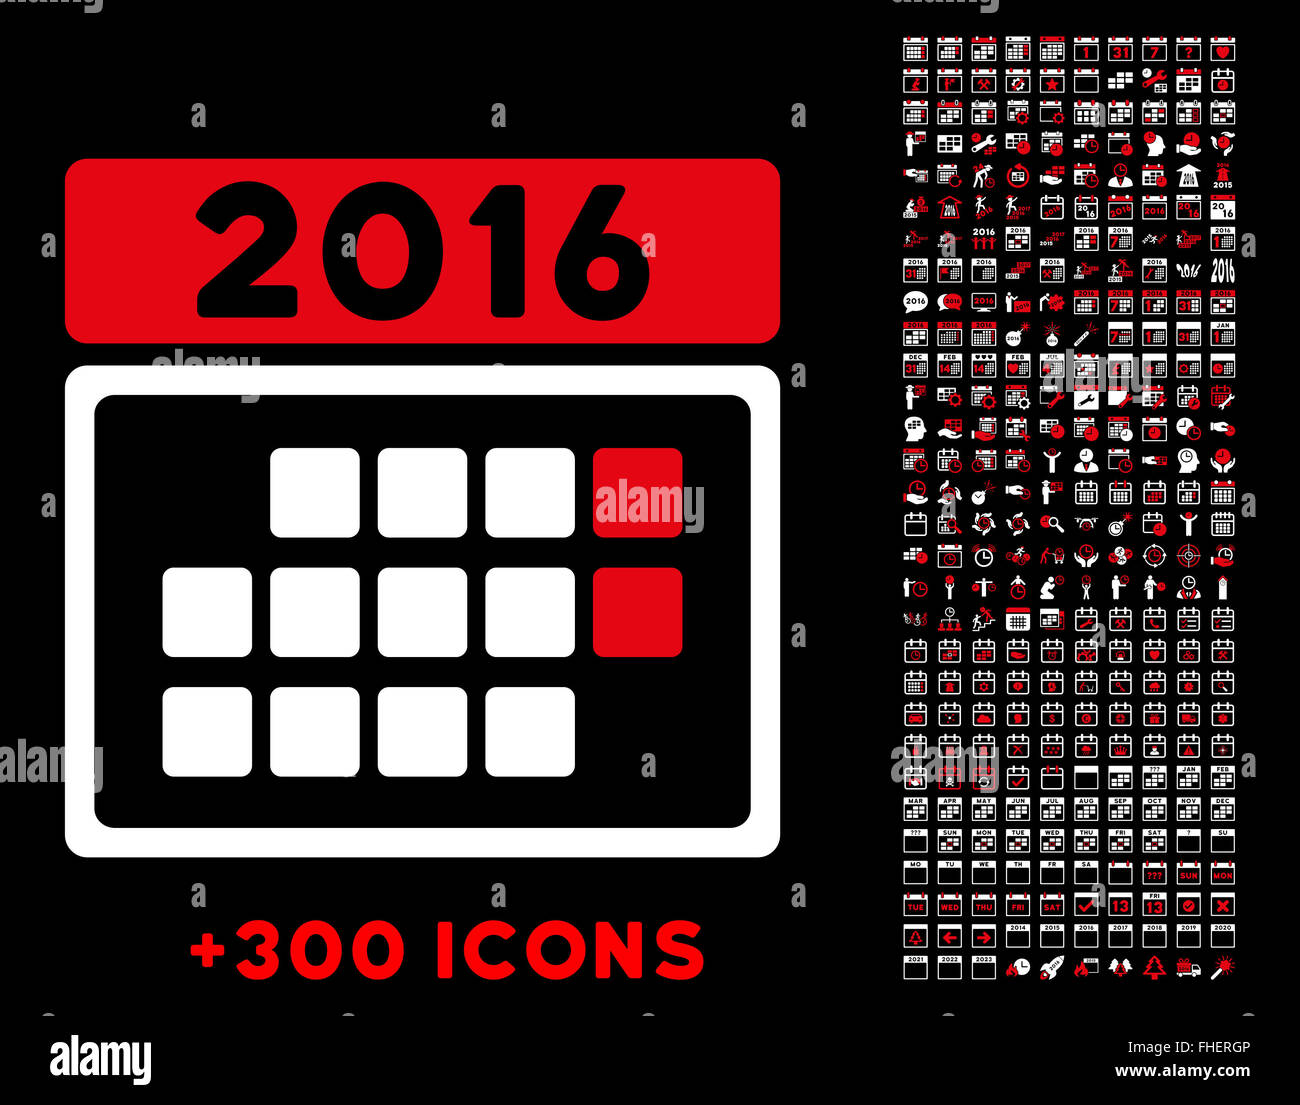 Organizer 2016 2016 Month Organizer Icon Stock Photo 96826822 Alamy